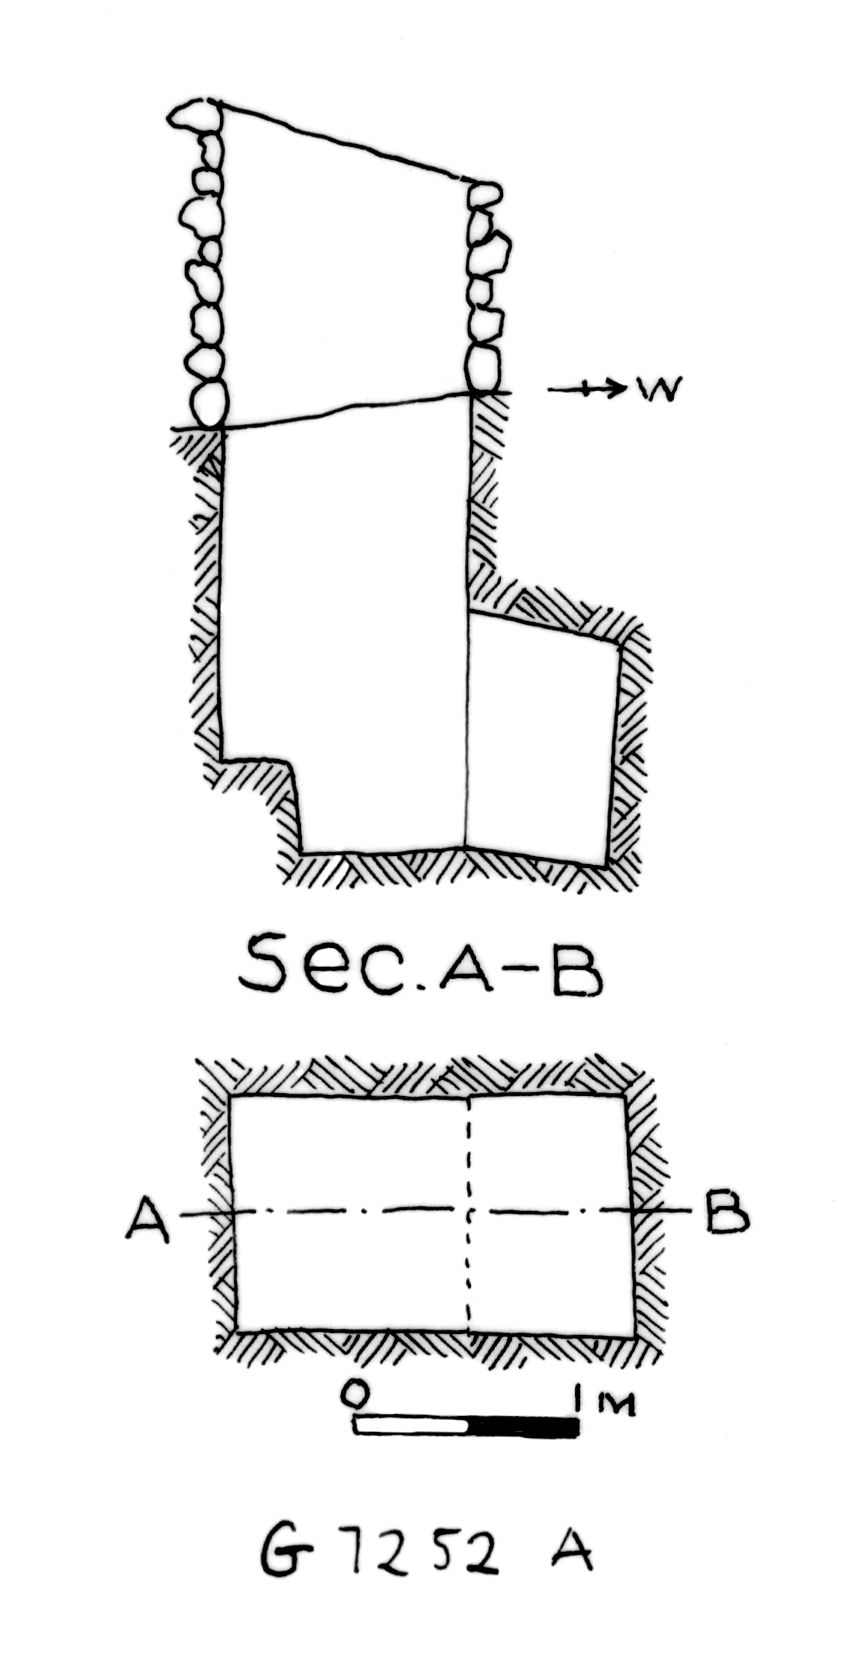 Maps and plans: G 7252, Shaft A